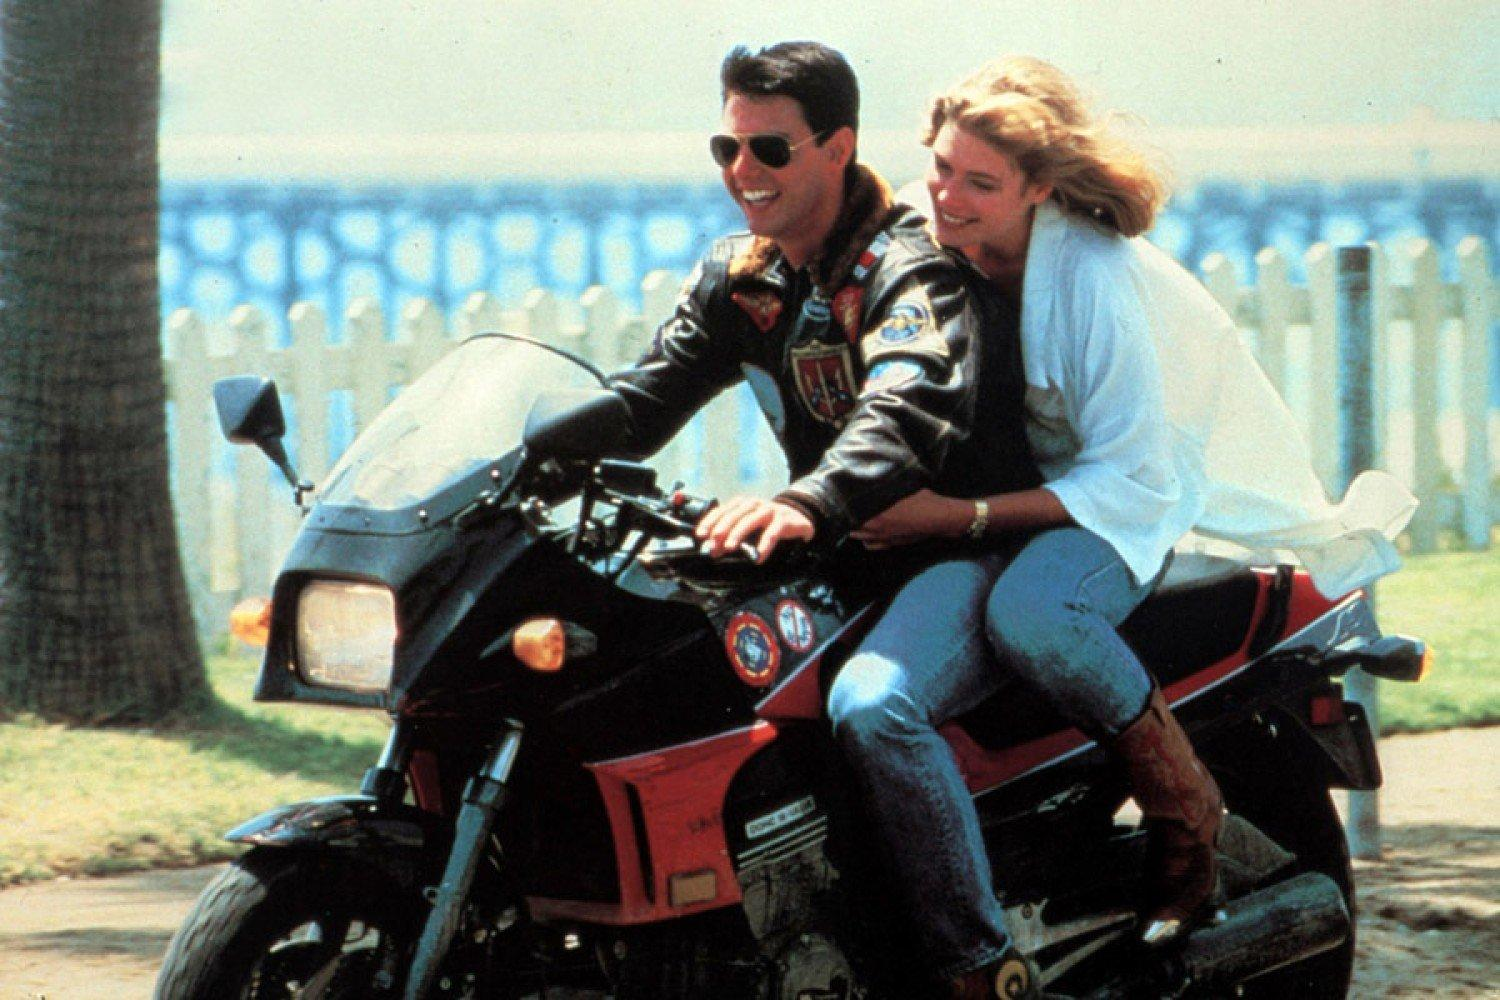 Image result for top gun motorcycle